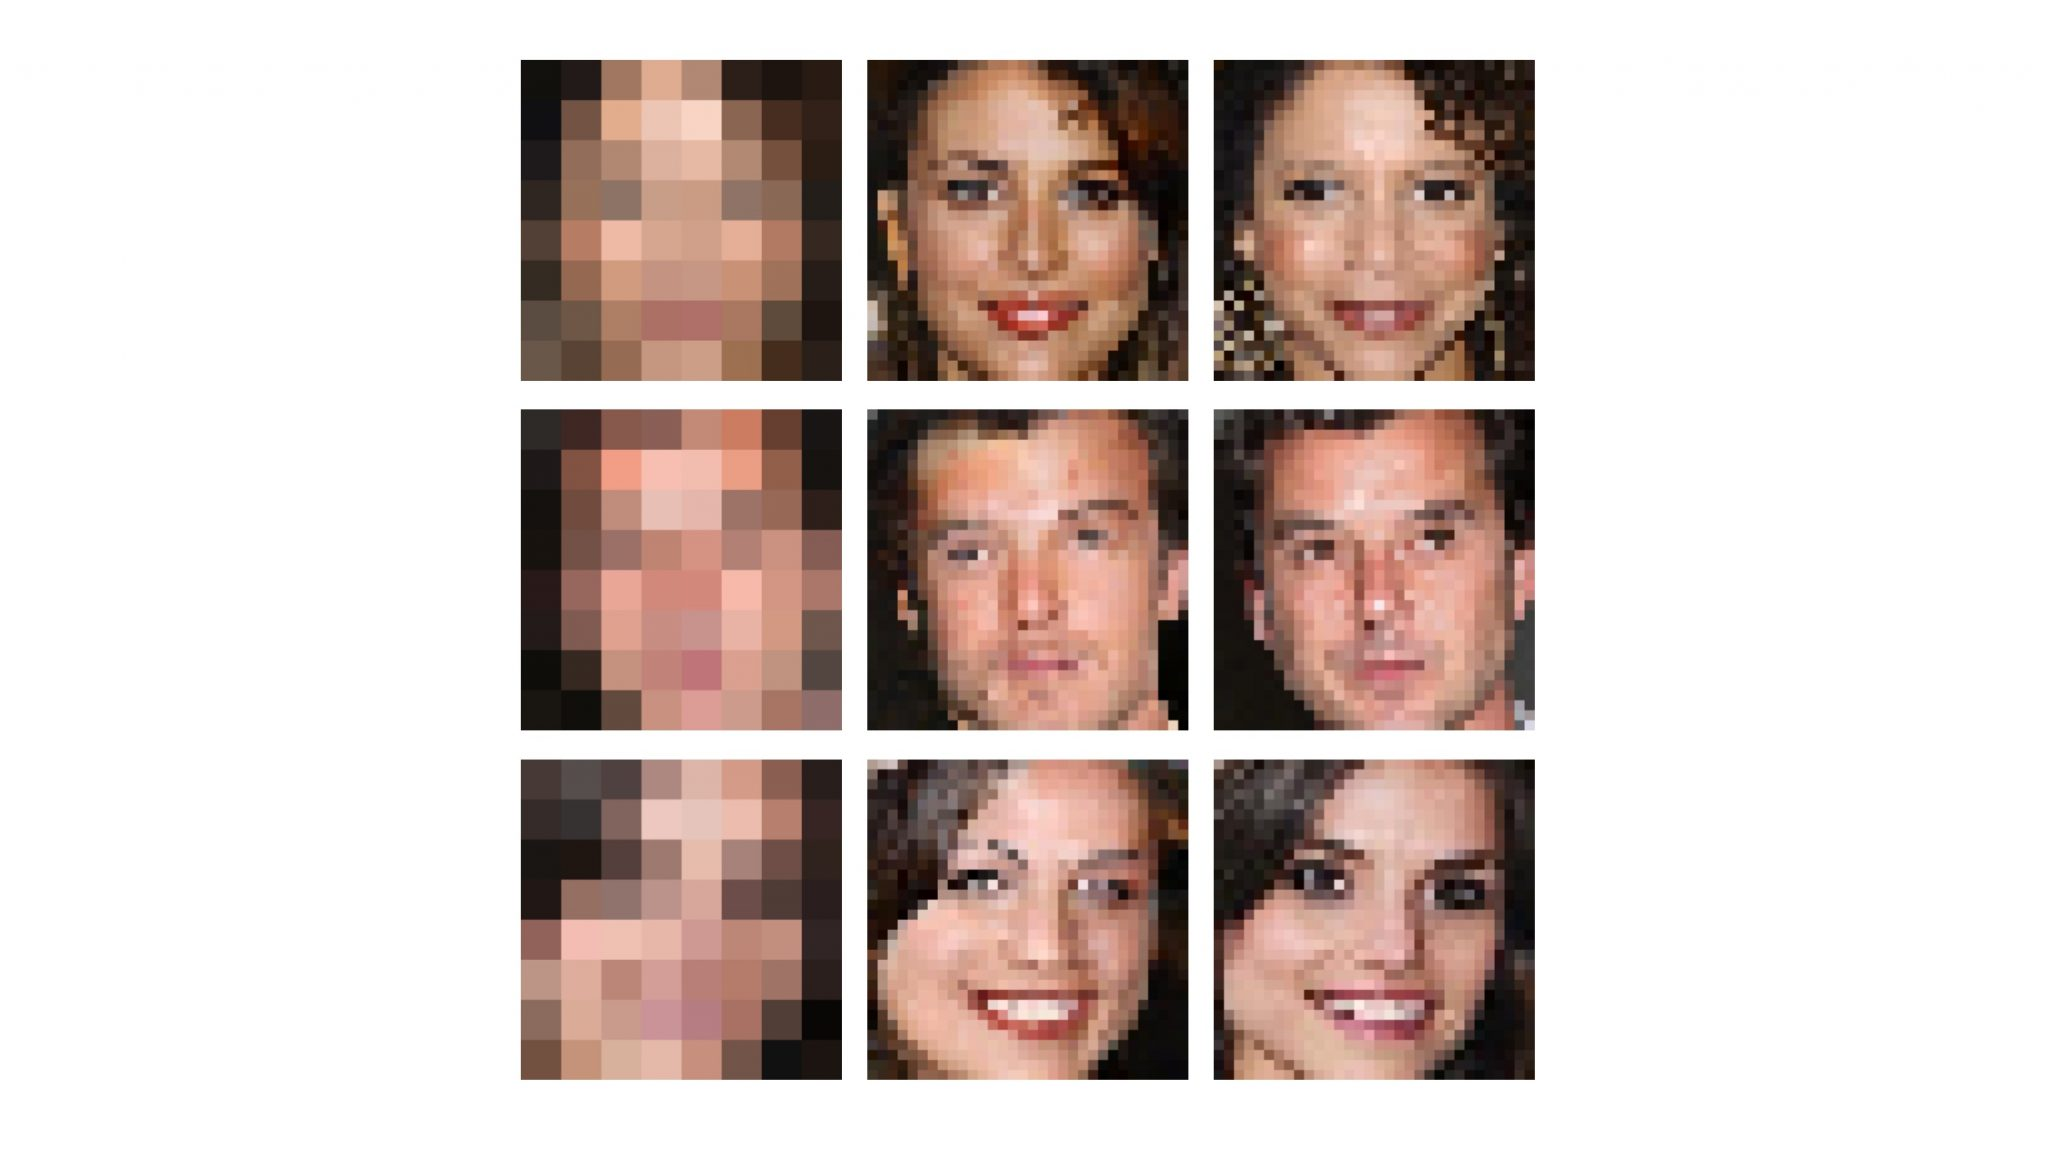 Google Brain Creates Technology that Can Zoom In and Enhance Pixelated Images